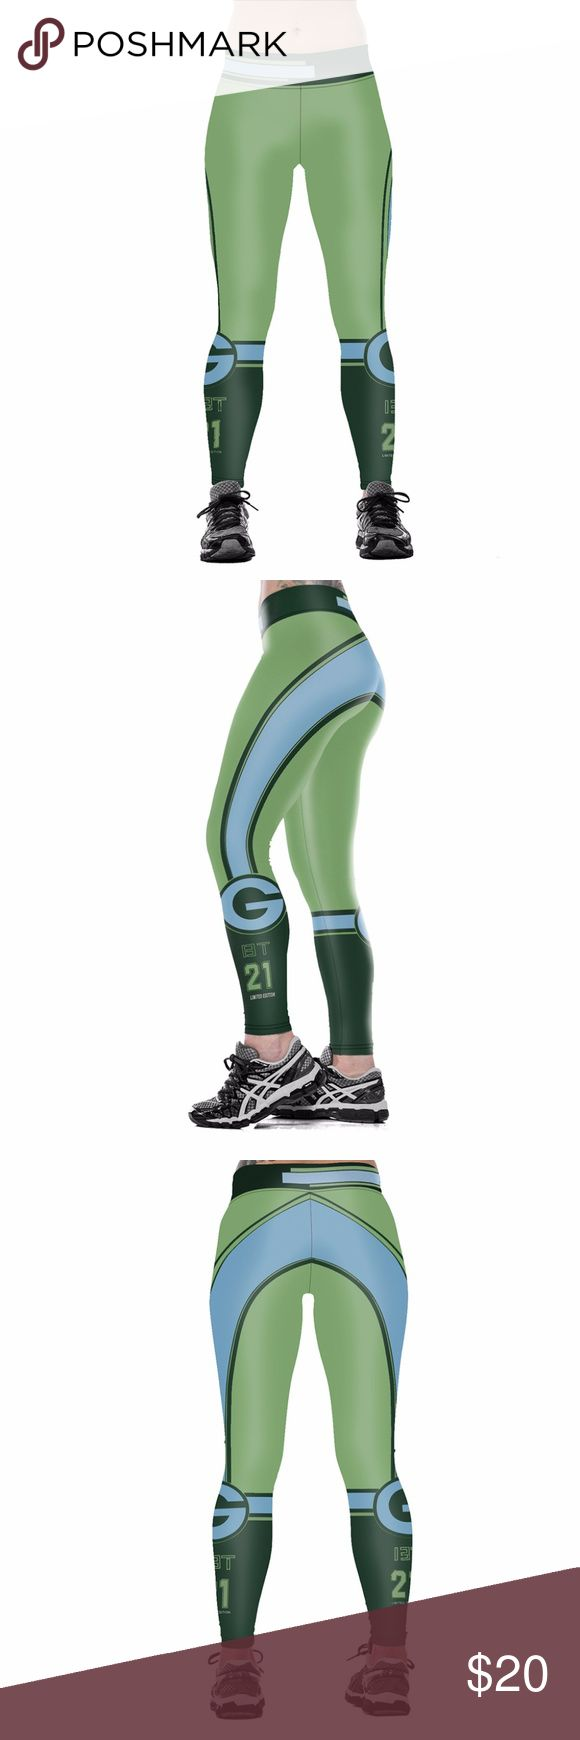 Green Bay Packers Leggings Lightweight soft- quick dry breathable fabric Suitable for any kind of workout, gym, yoga, Zumba, cycling, etc. or casual wear High-quality construction with 6-thread double lock stitch seams Four-way Stretch Material: 82% Polyester, 18% Spandex Pants Leggings